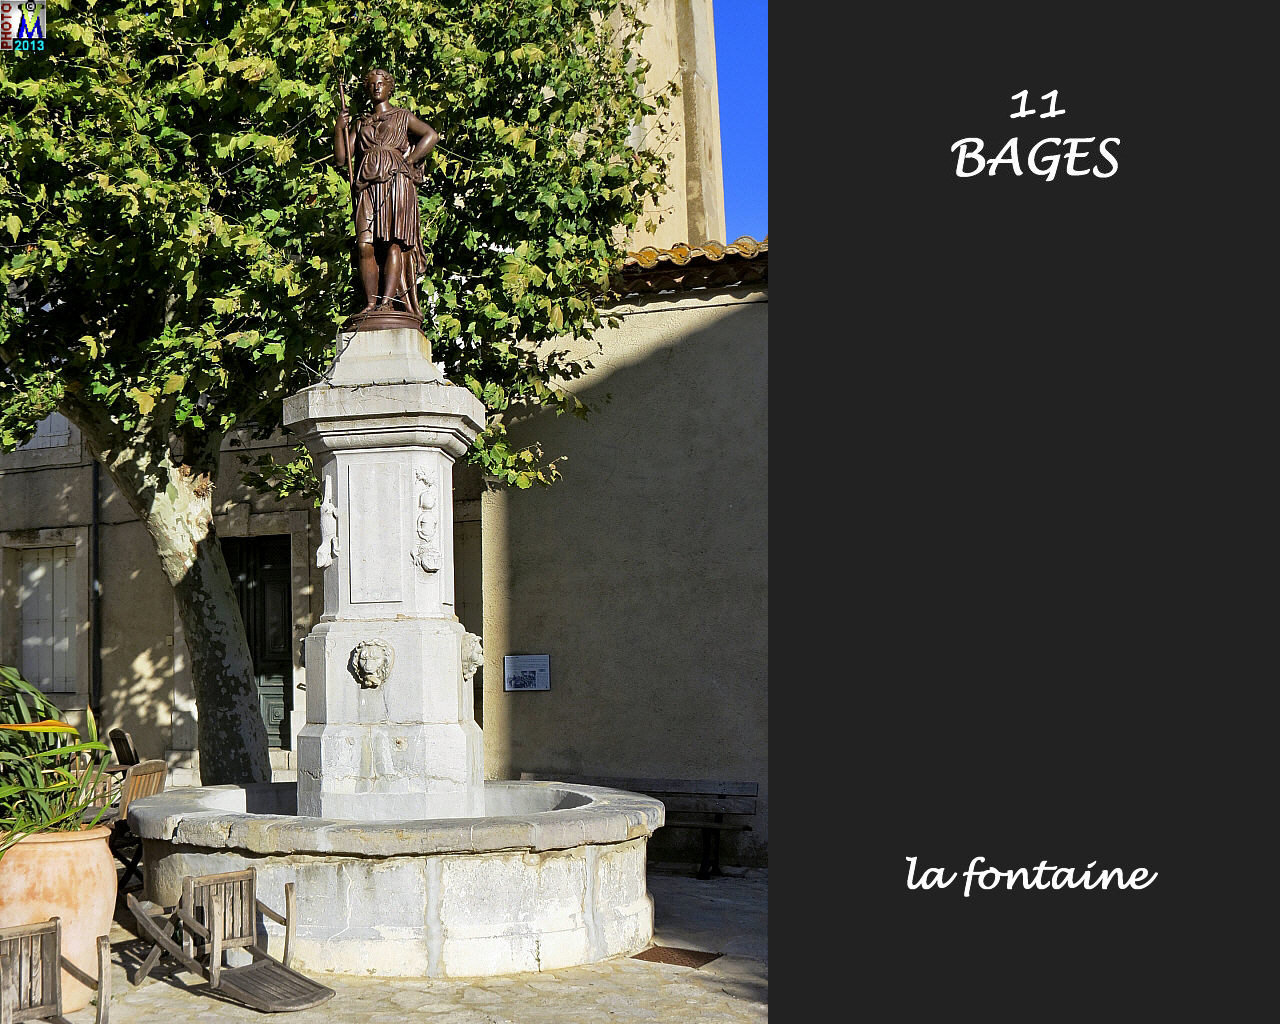 11BAGES_fontaine_100.jpg